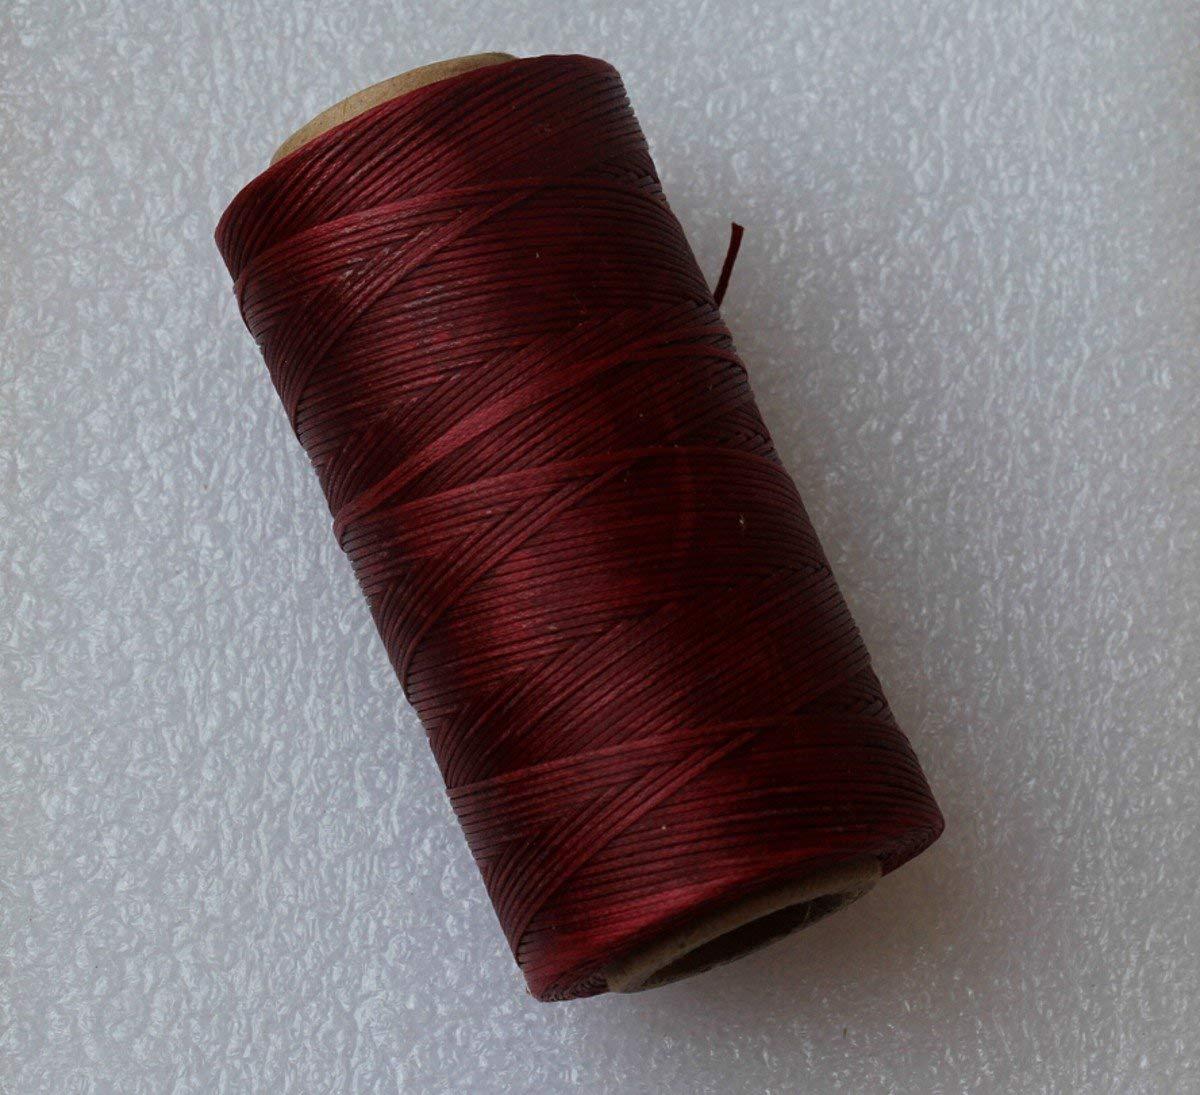 WellieSTR 284yrd Deep Brown Leather Craft Sewing Waxed Thread Heavy Duty Waxed Thread Sewing Waxed Coarse Whipping Thread 1mm Leather Hand Stitching S020 125g by WellieSTR